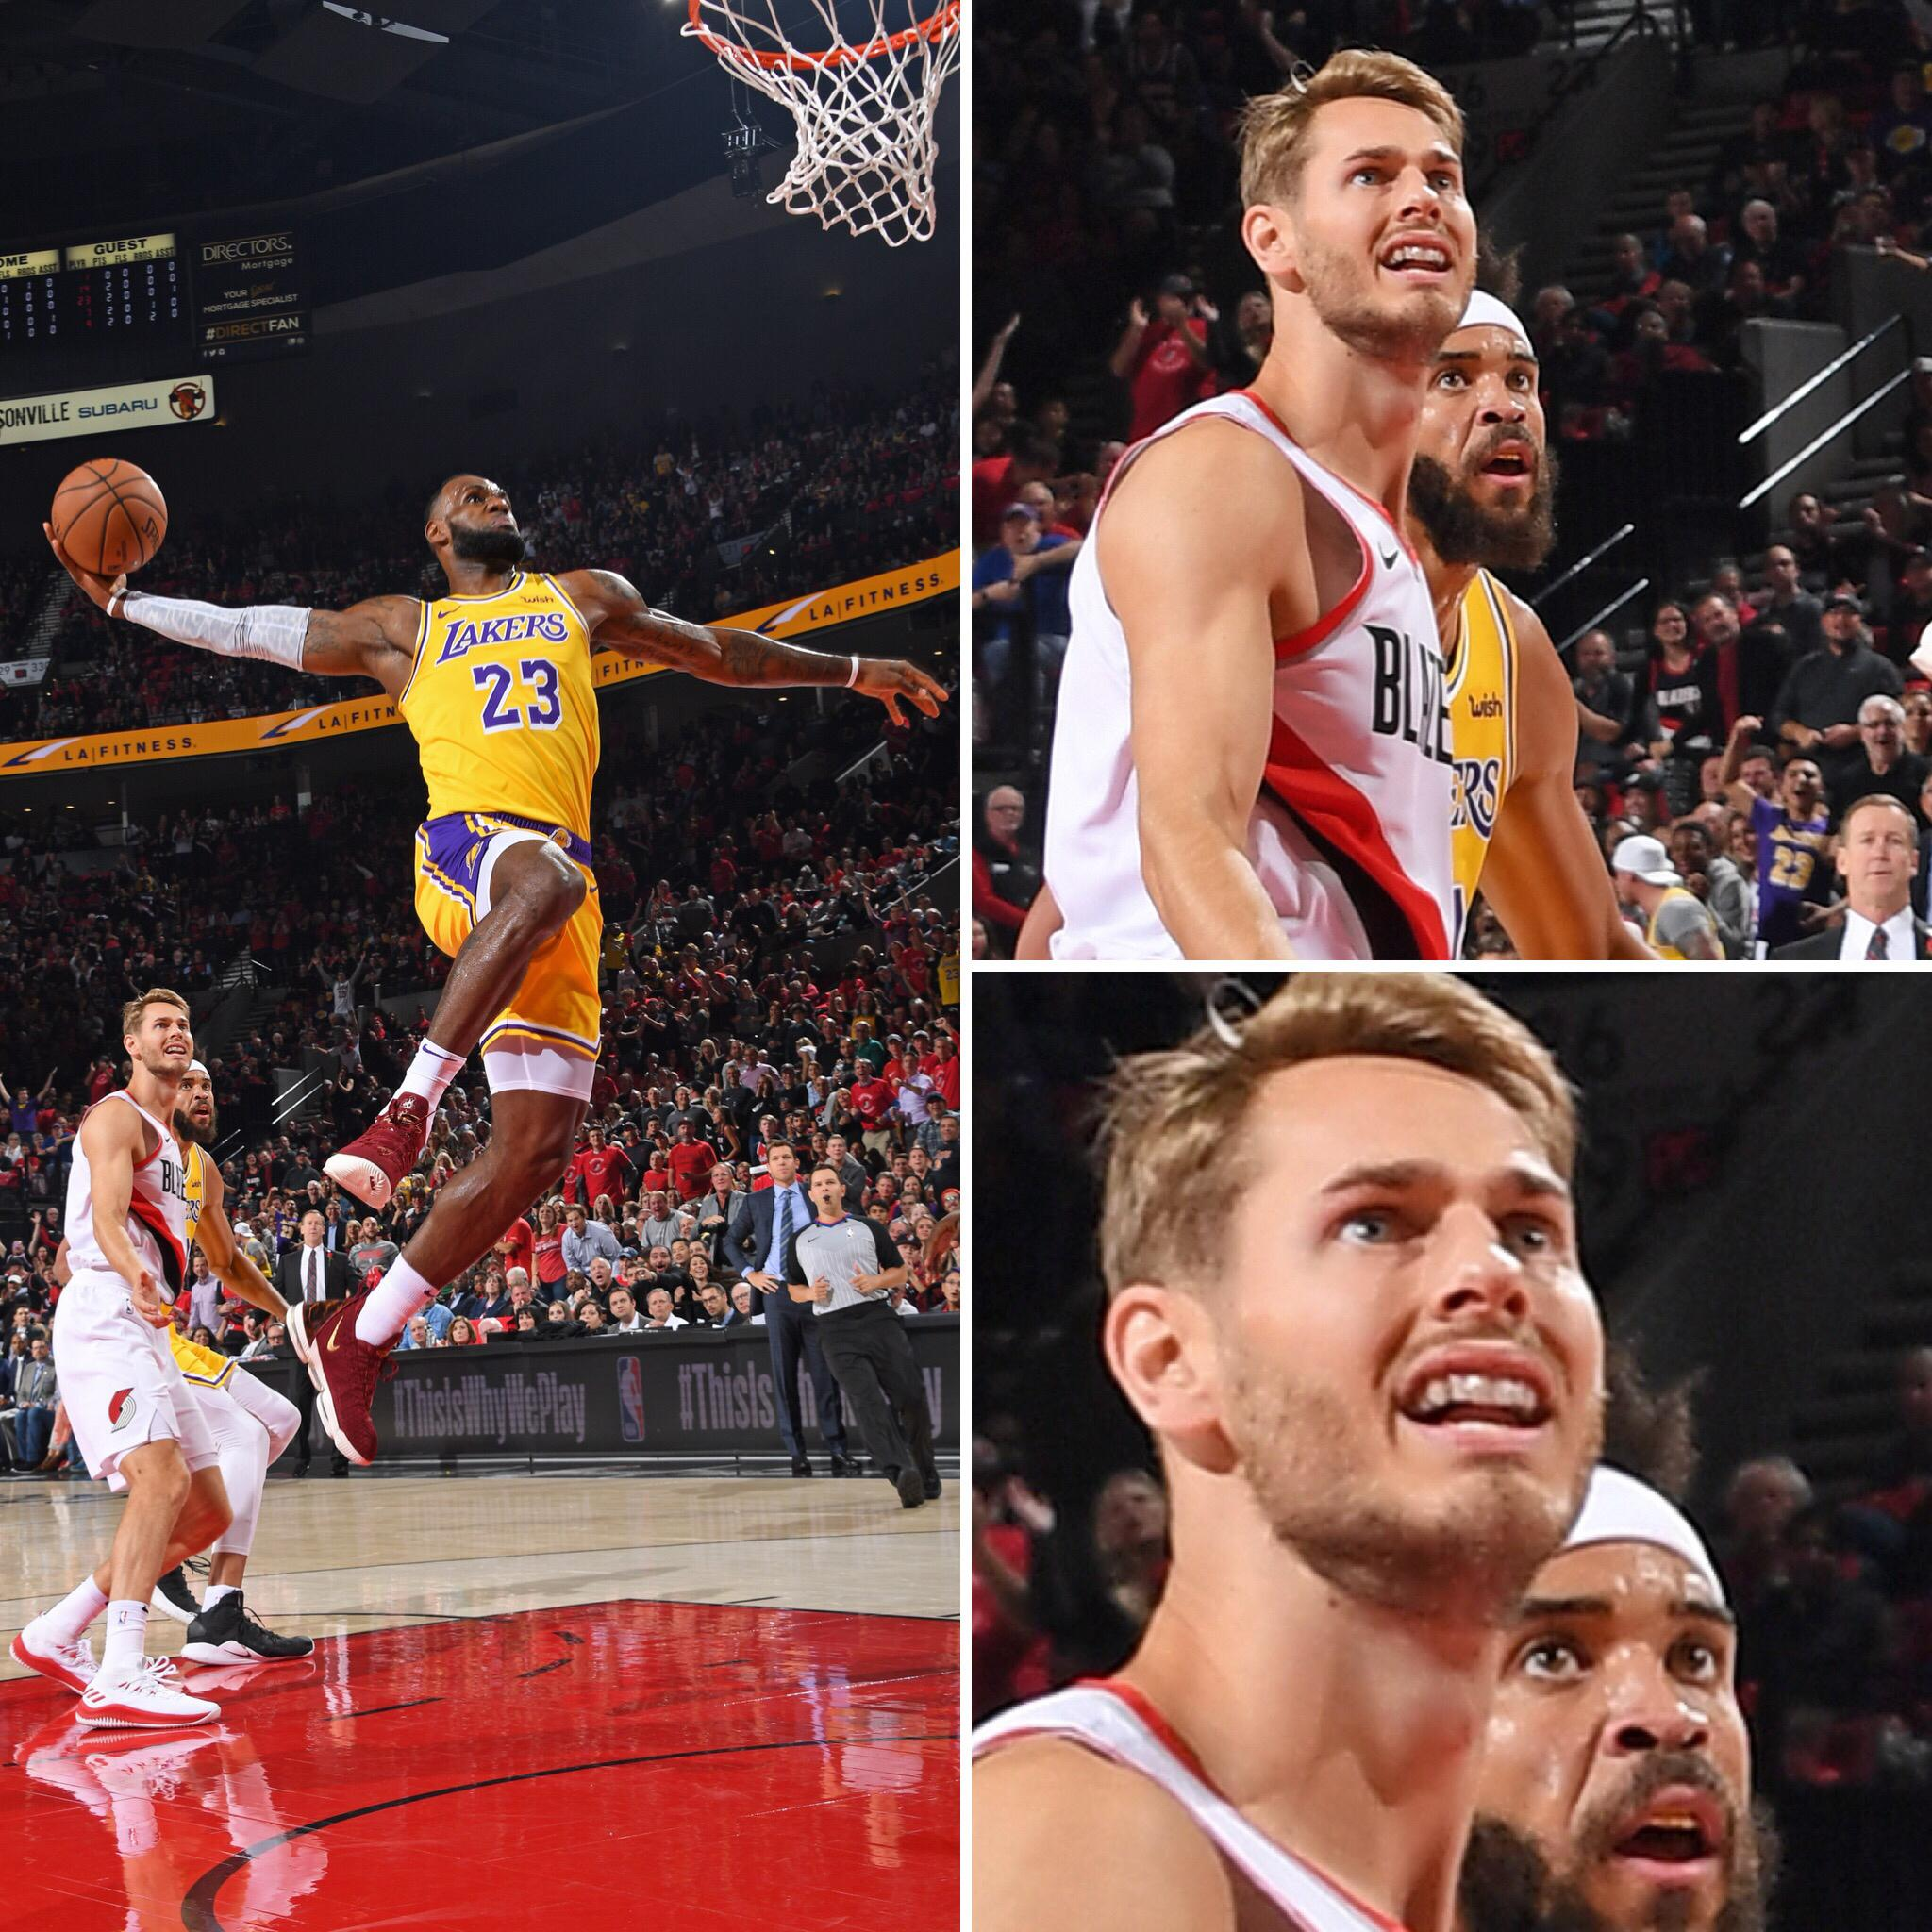 Jake Layman is all of us ... https://t.co/4EjKRLbR2p